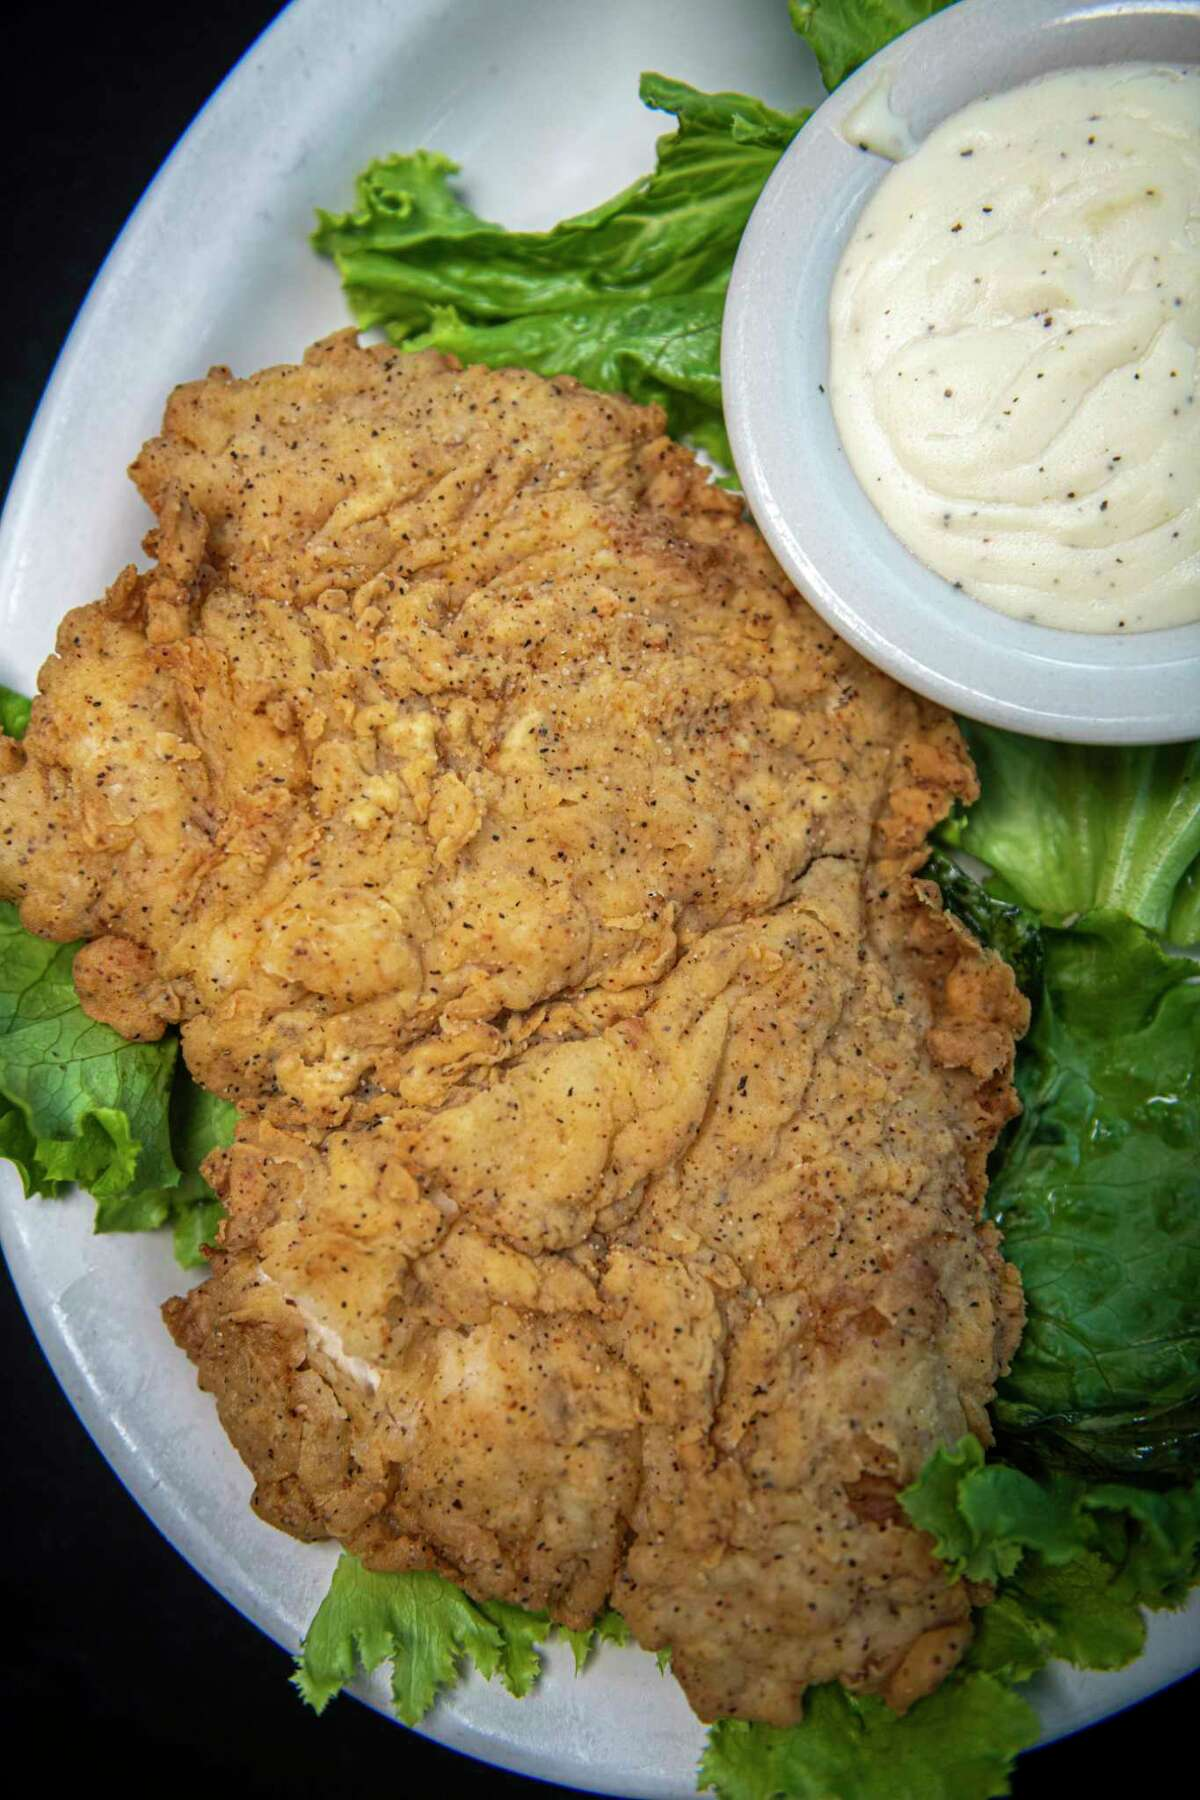 410 Diner, located at 8315 Broadway Street, won the 2019 Readers Choice for Best Fried Chicken.